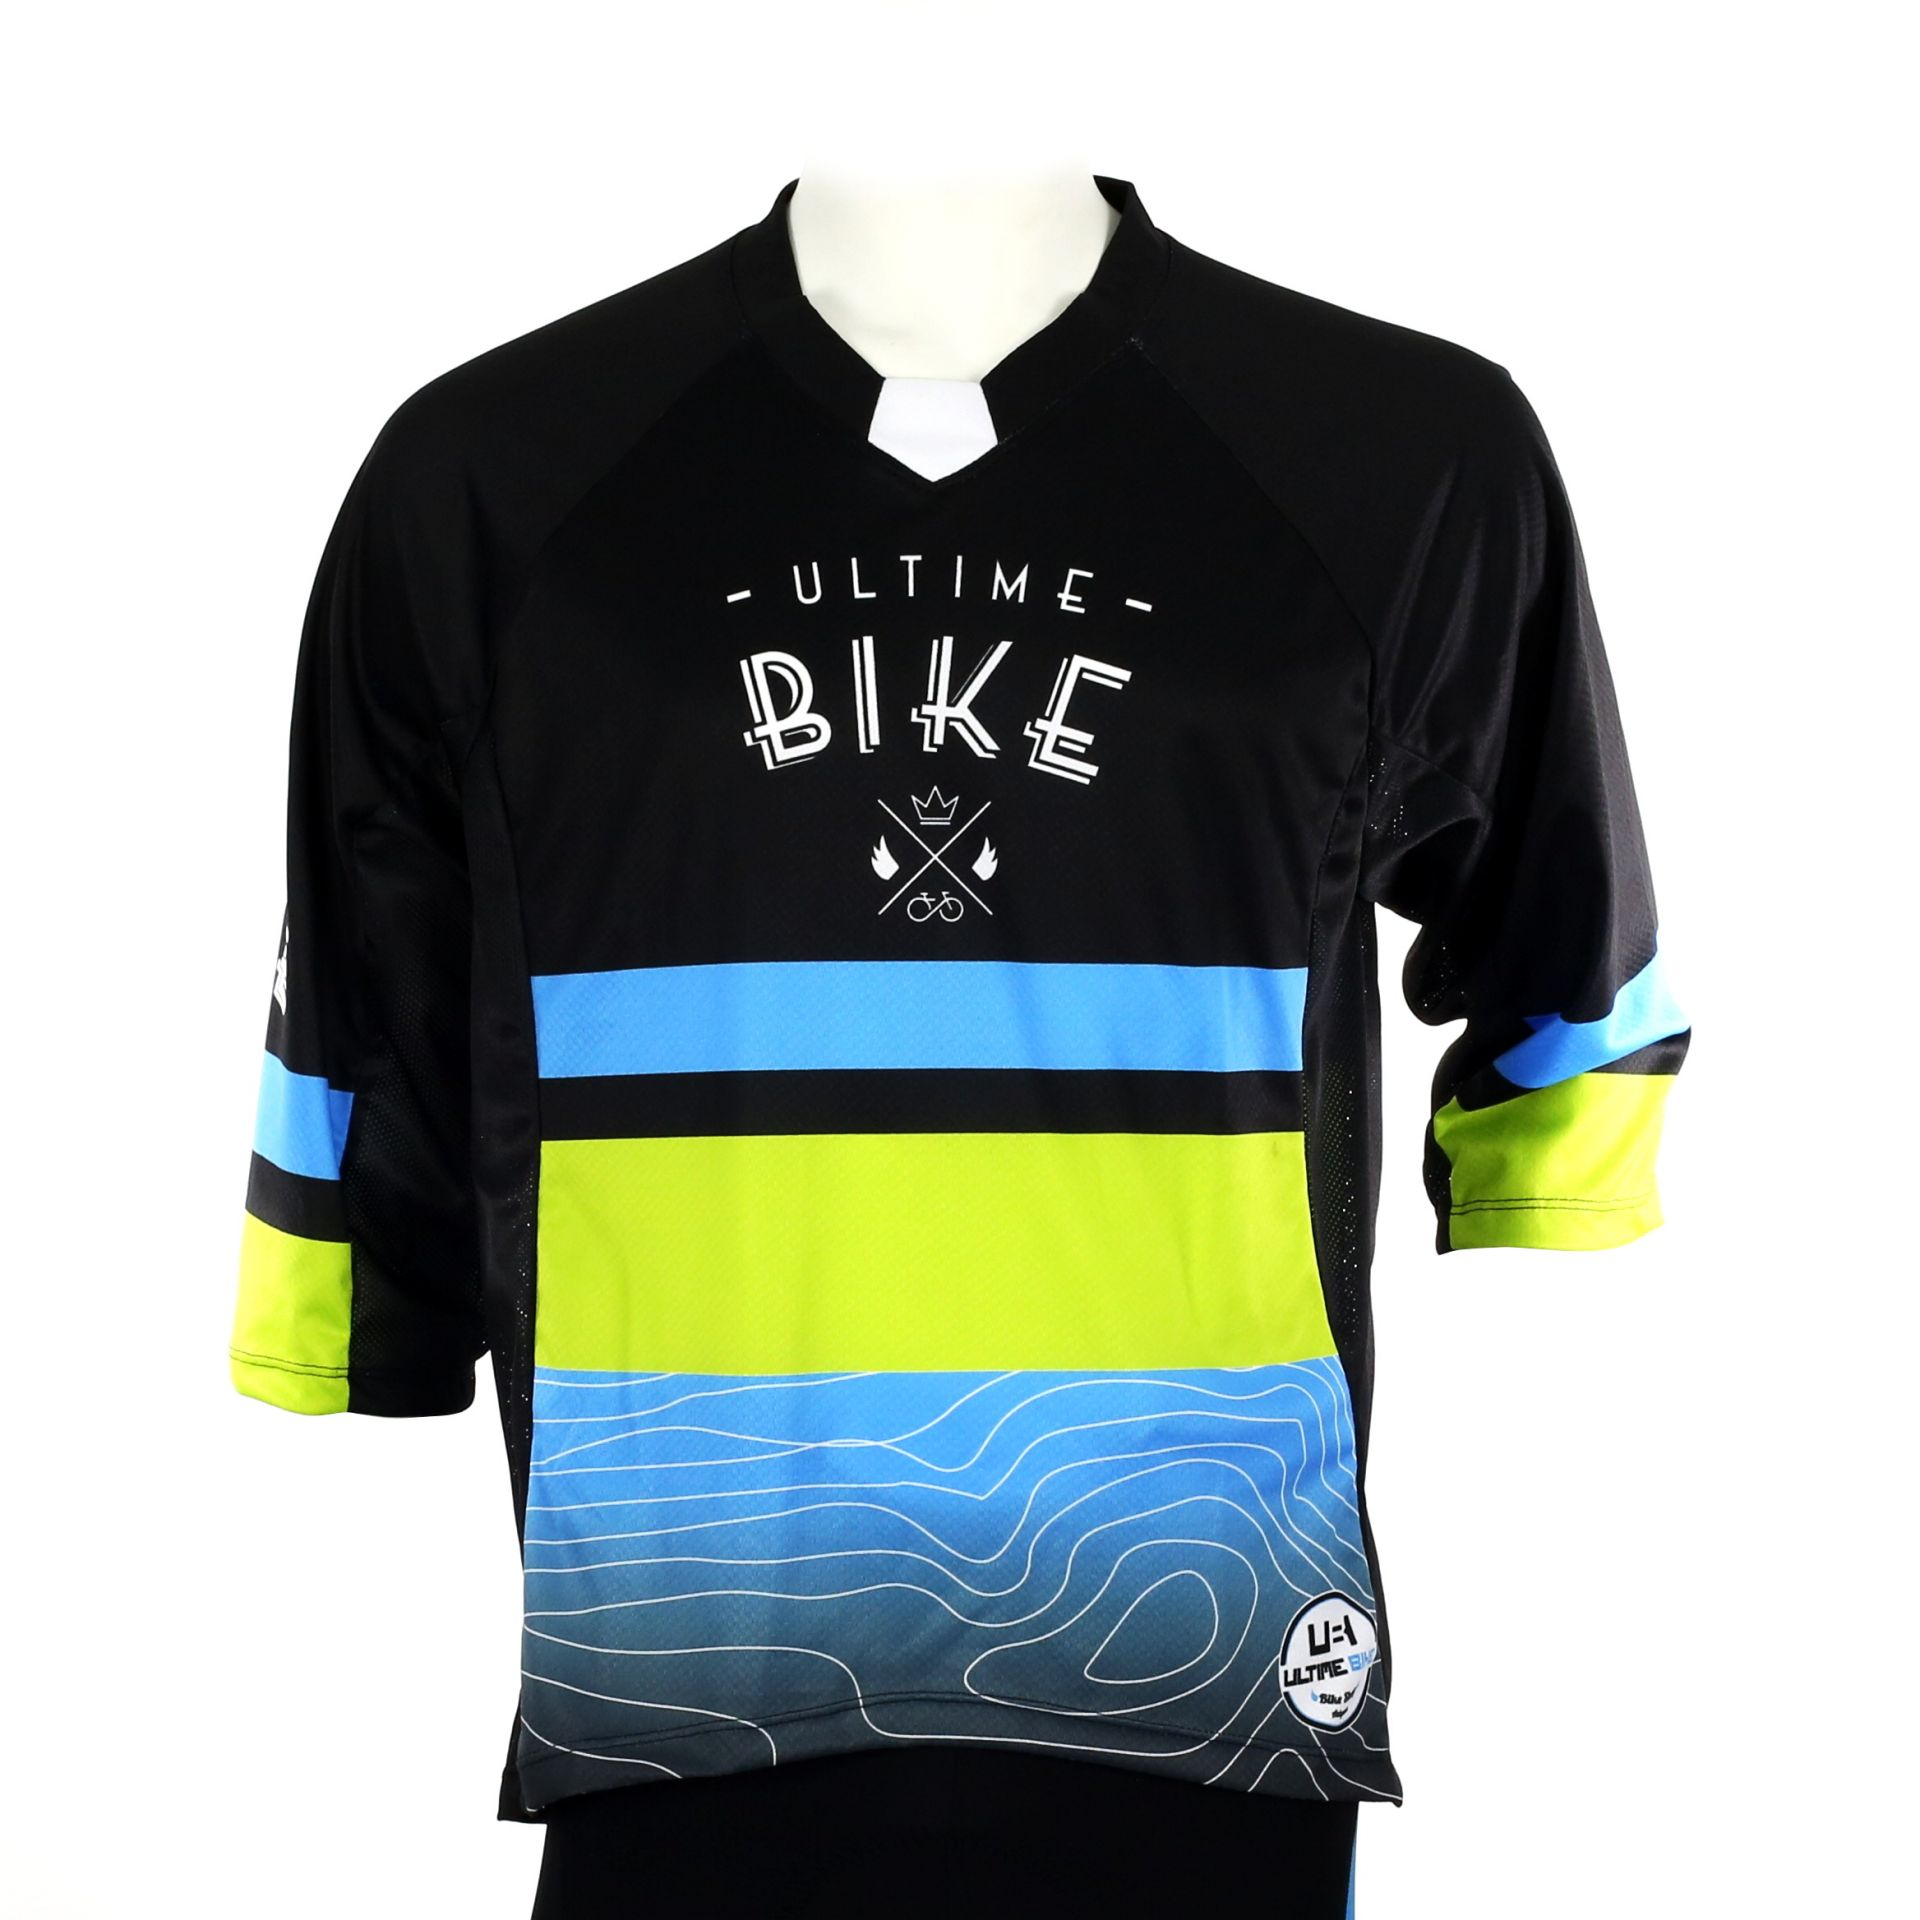 Maillot UltimeBike Enduro by TACTIC Manches 3/4 - M